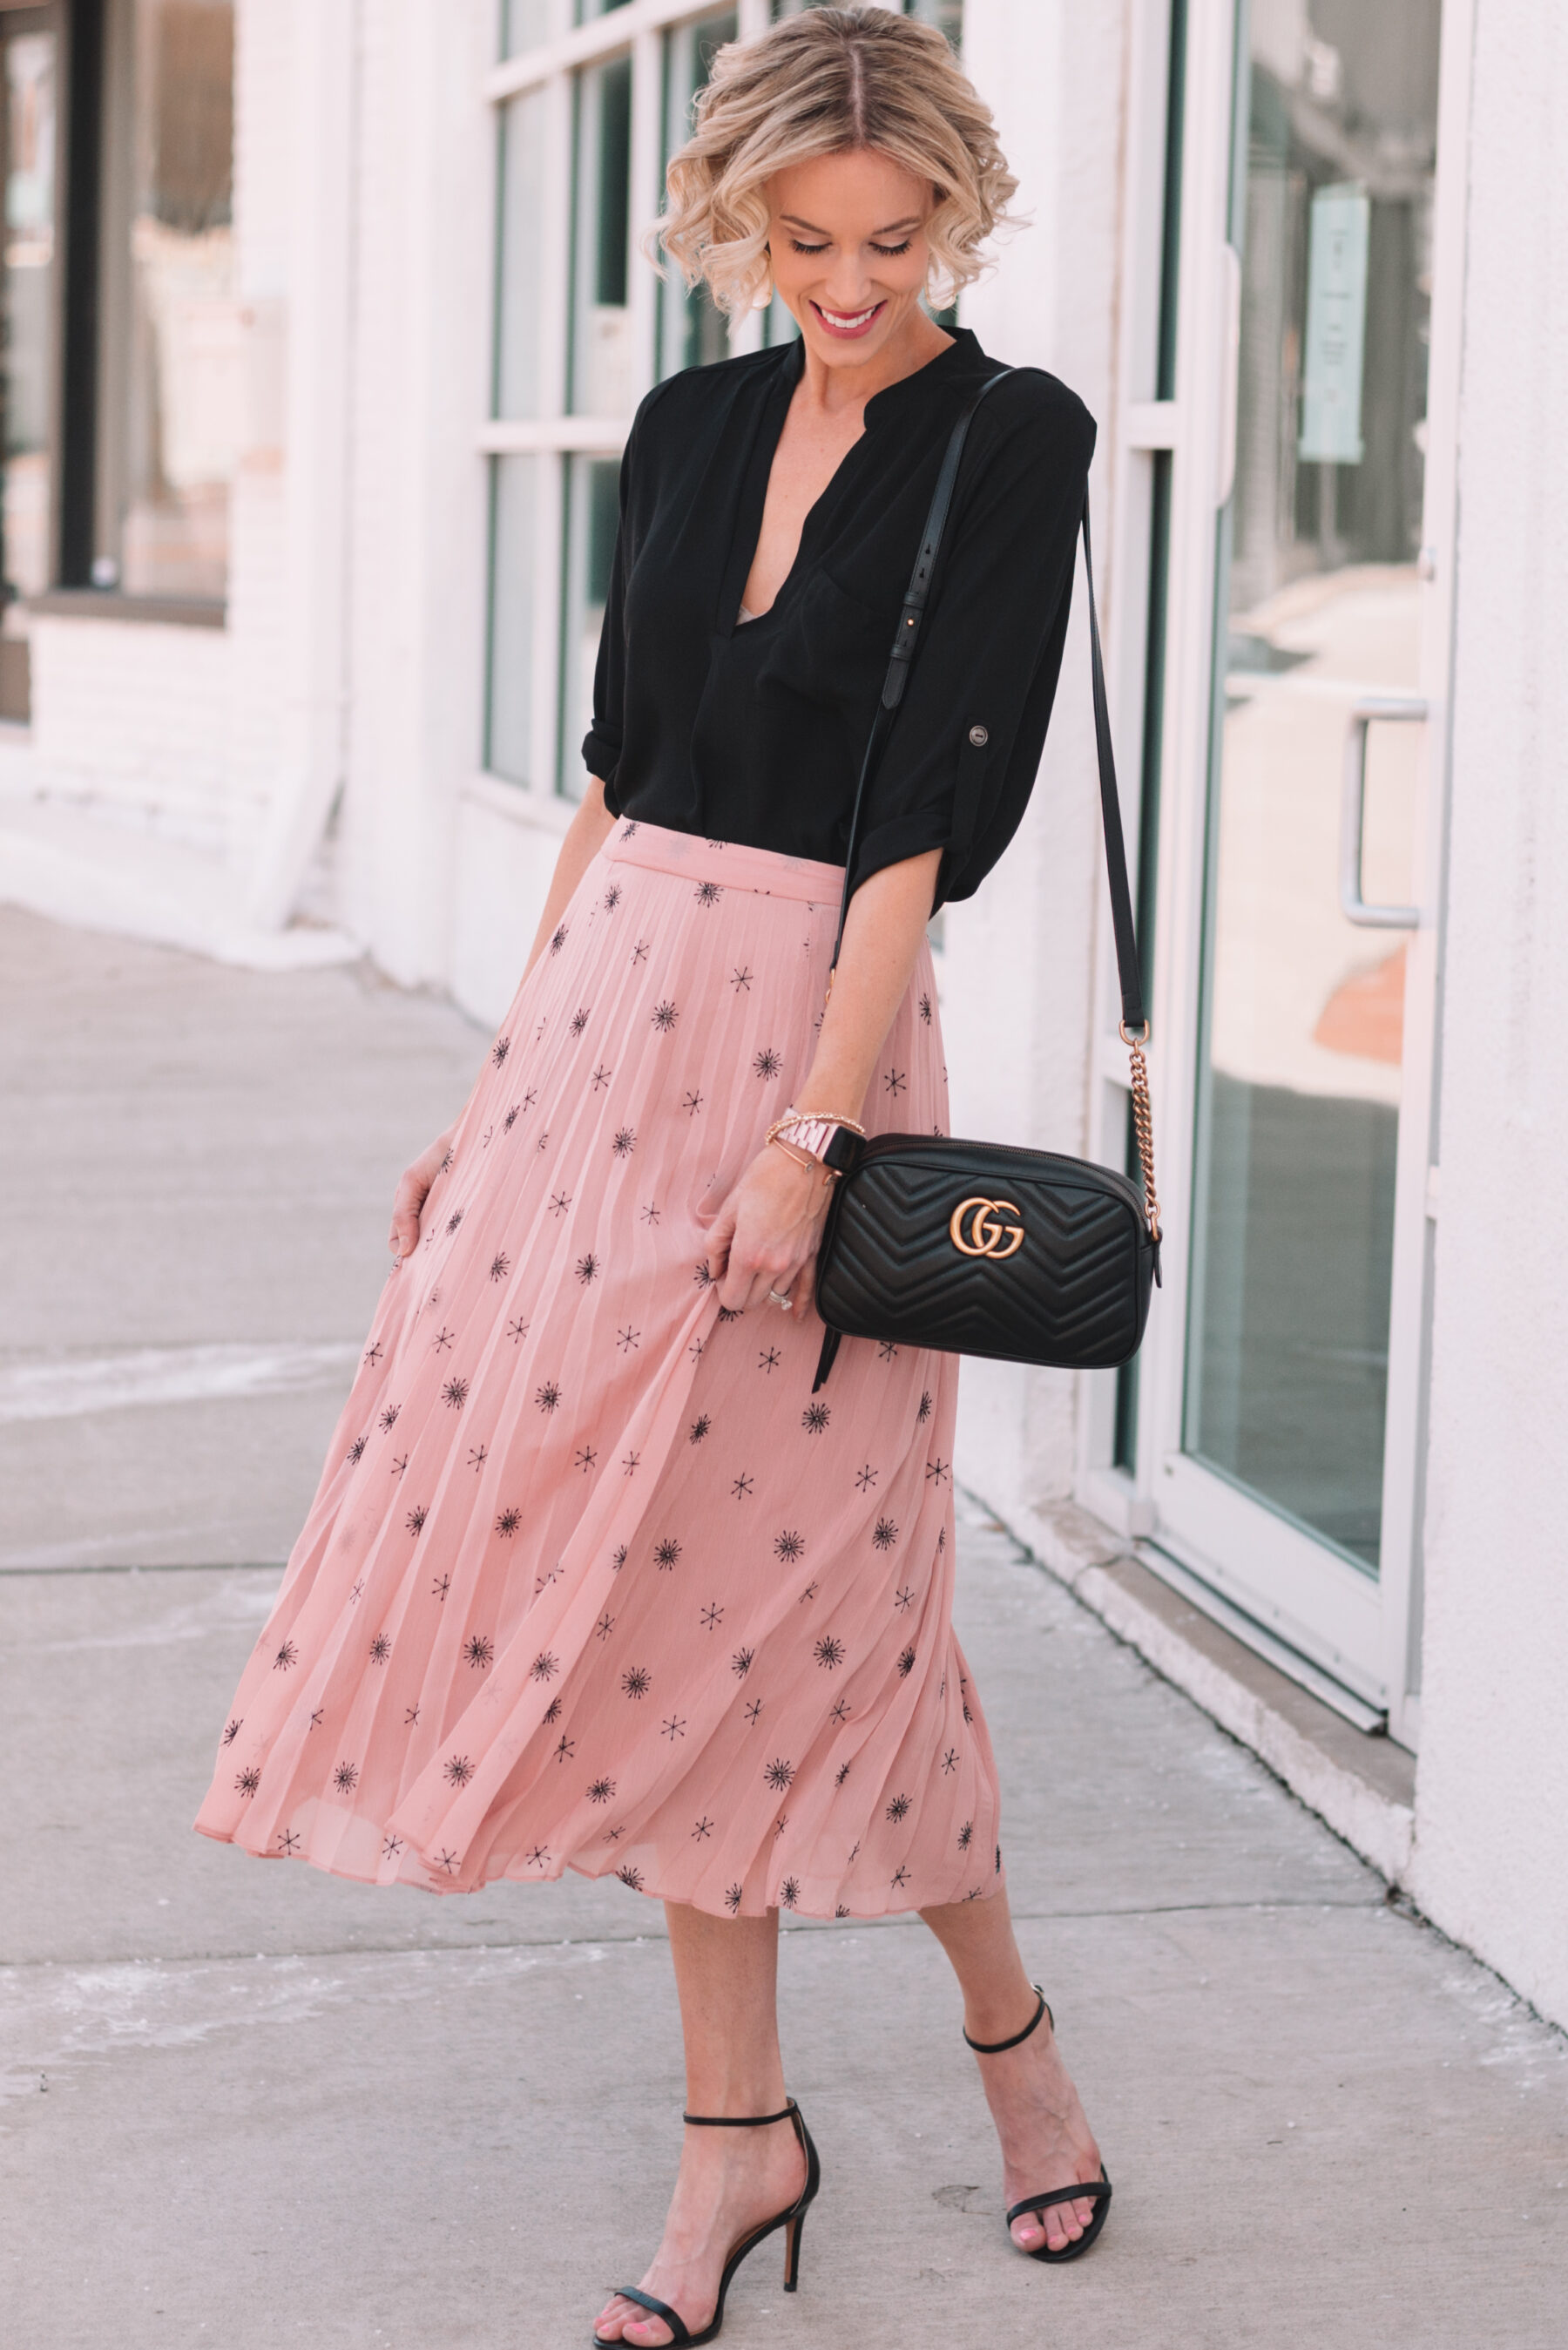 cccdf8d315 midi skirt obsession, gorgeous blush embroidered midi skirt paired with  black tunic top for spring ...